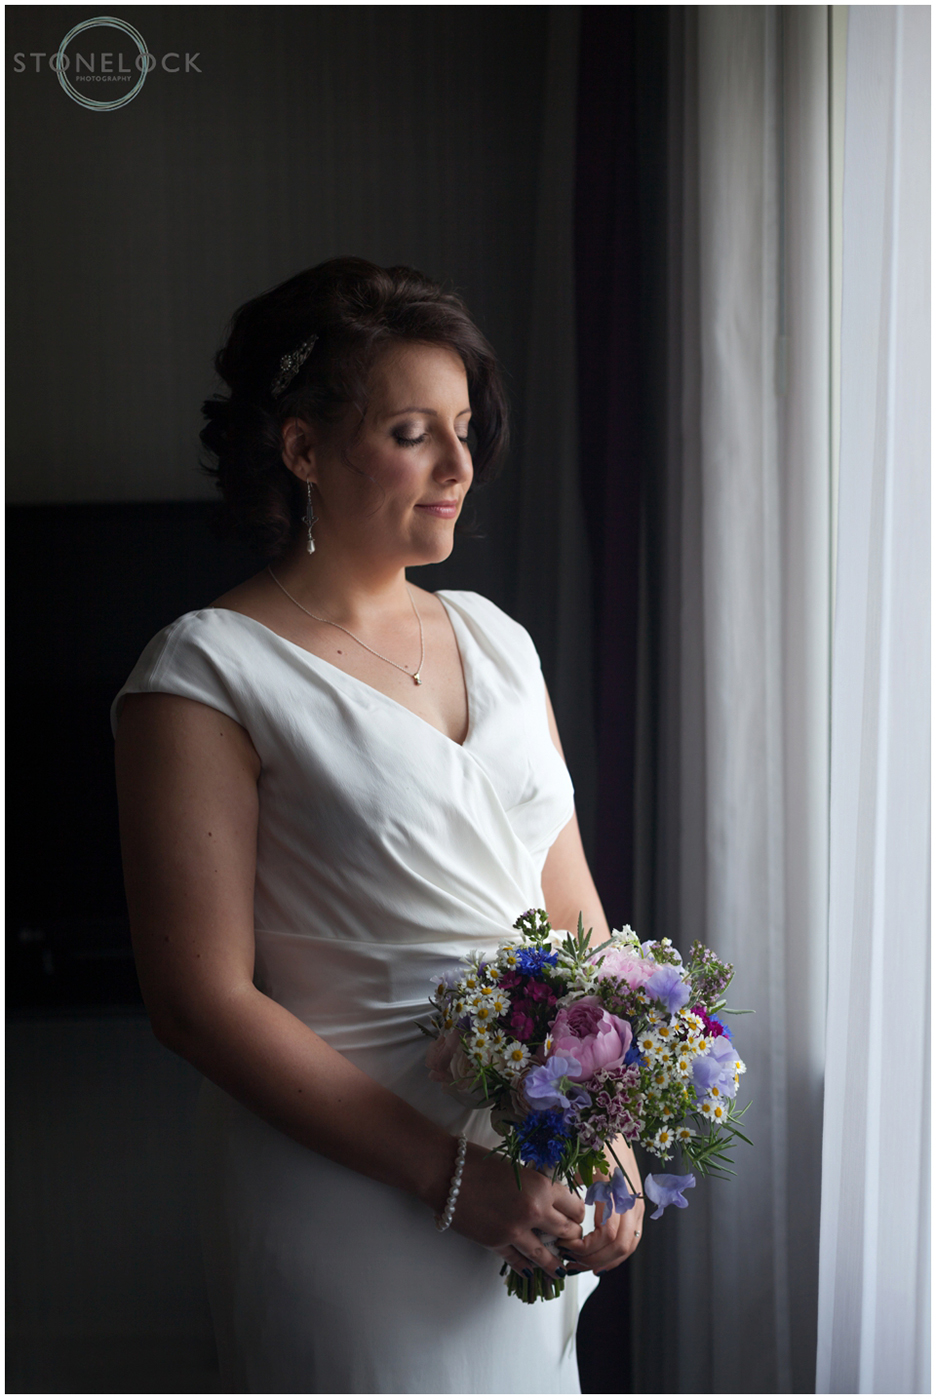 A gorgeous photo of a bride standing in from of a window